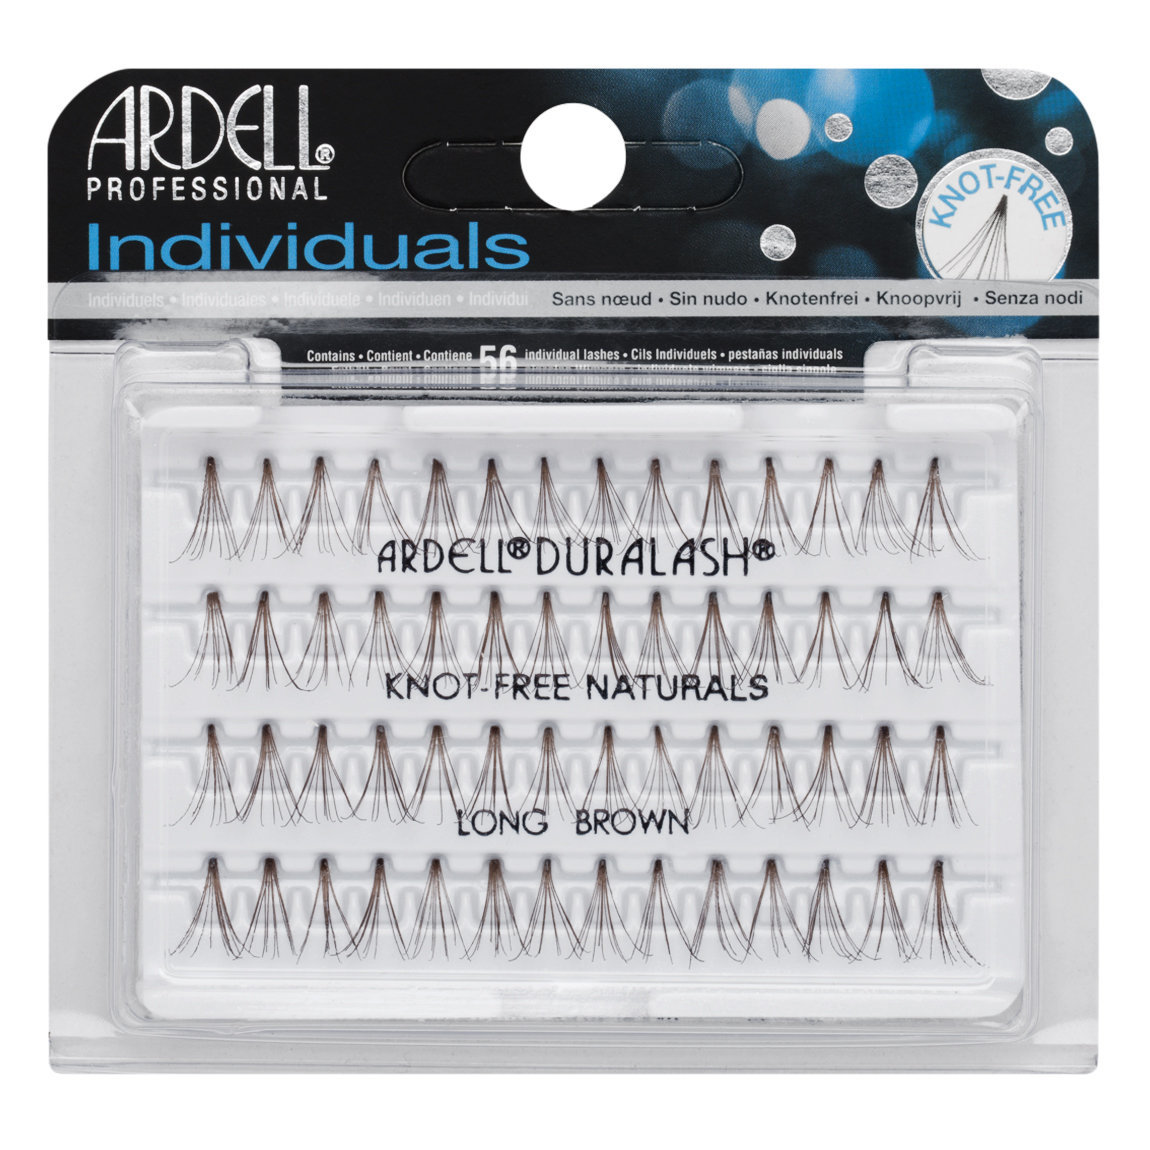 Ardell Individuals Knot-Free Natural Lashes Long Brown